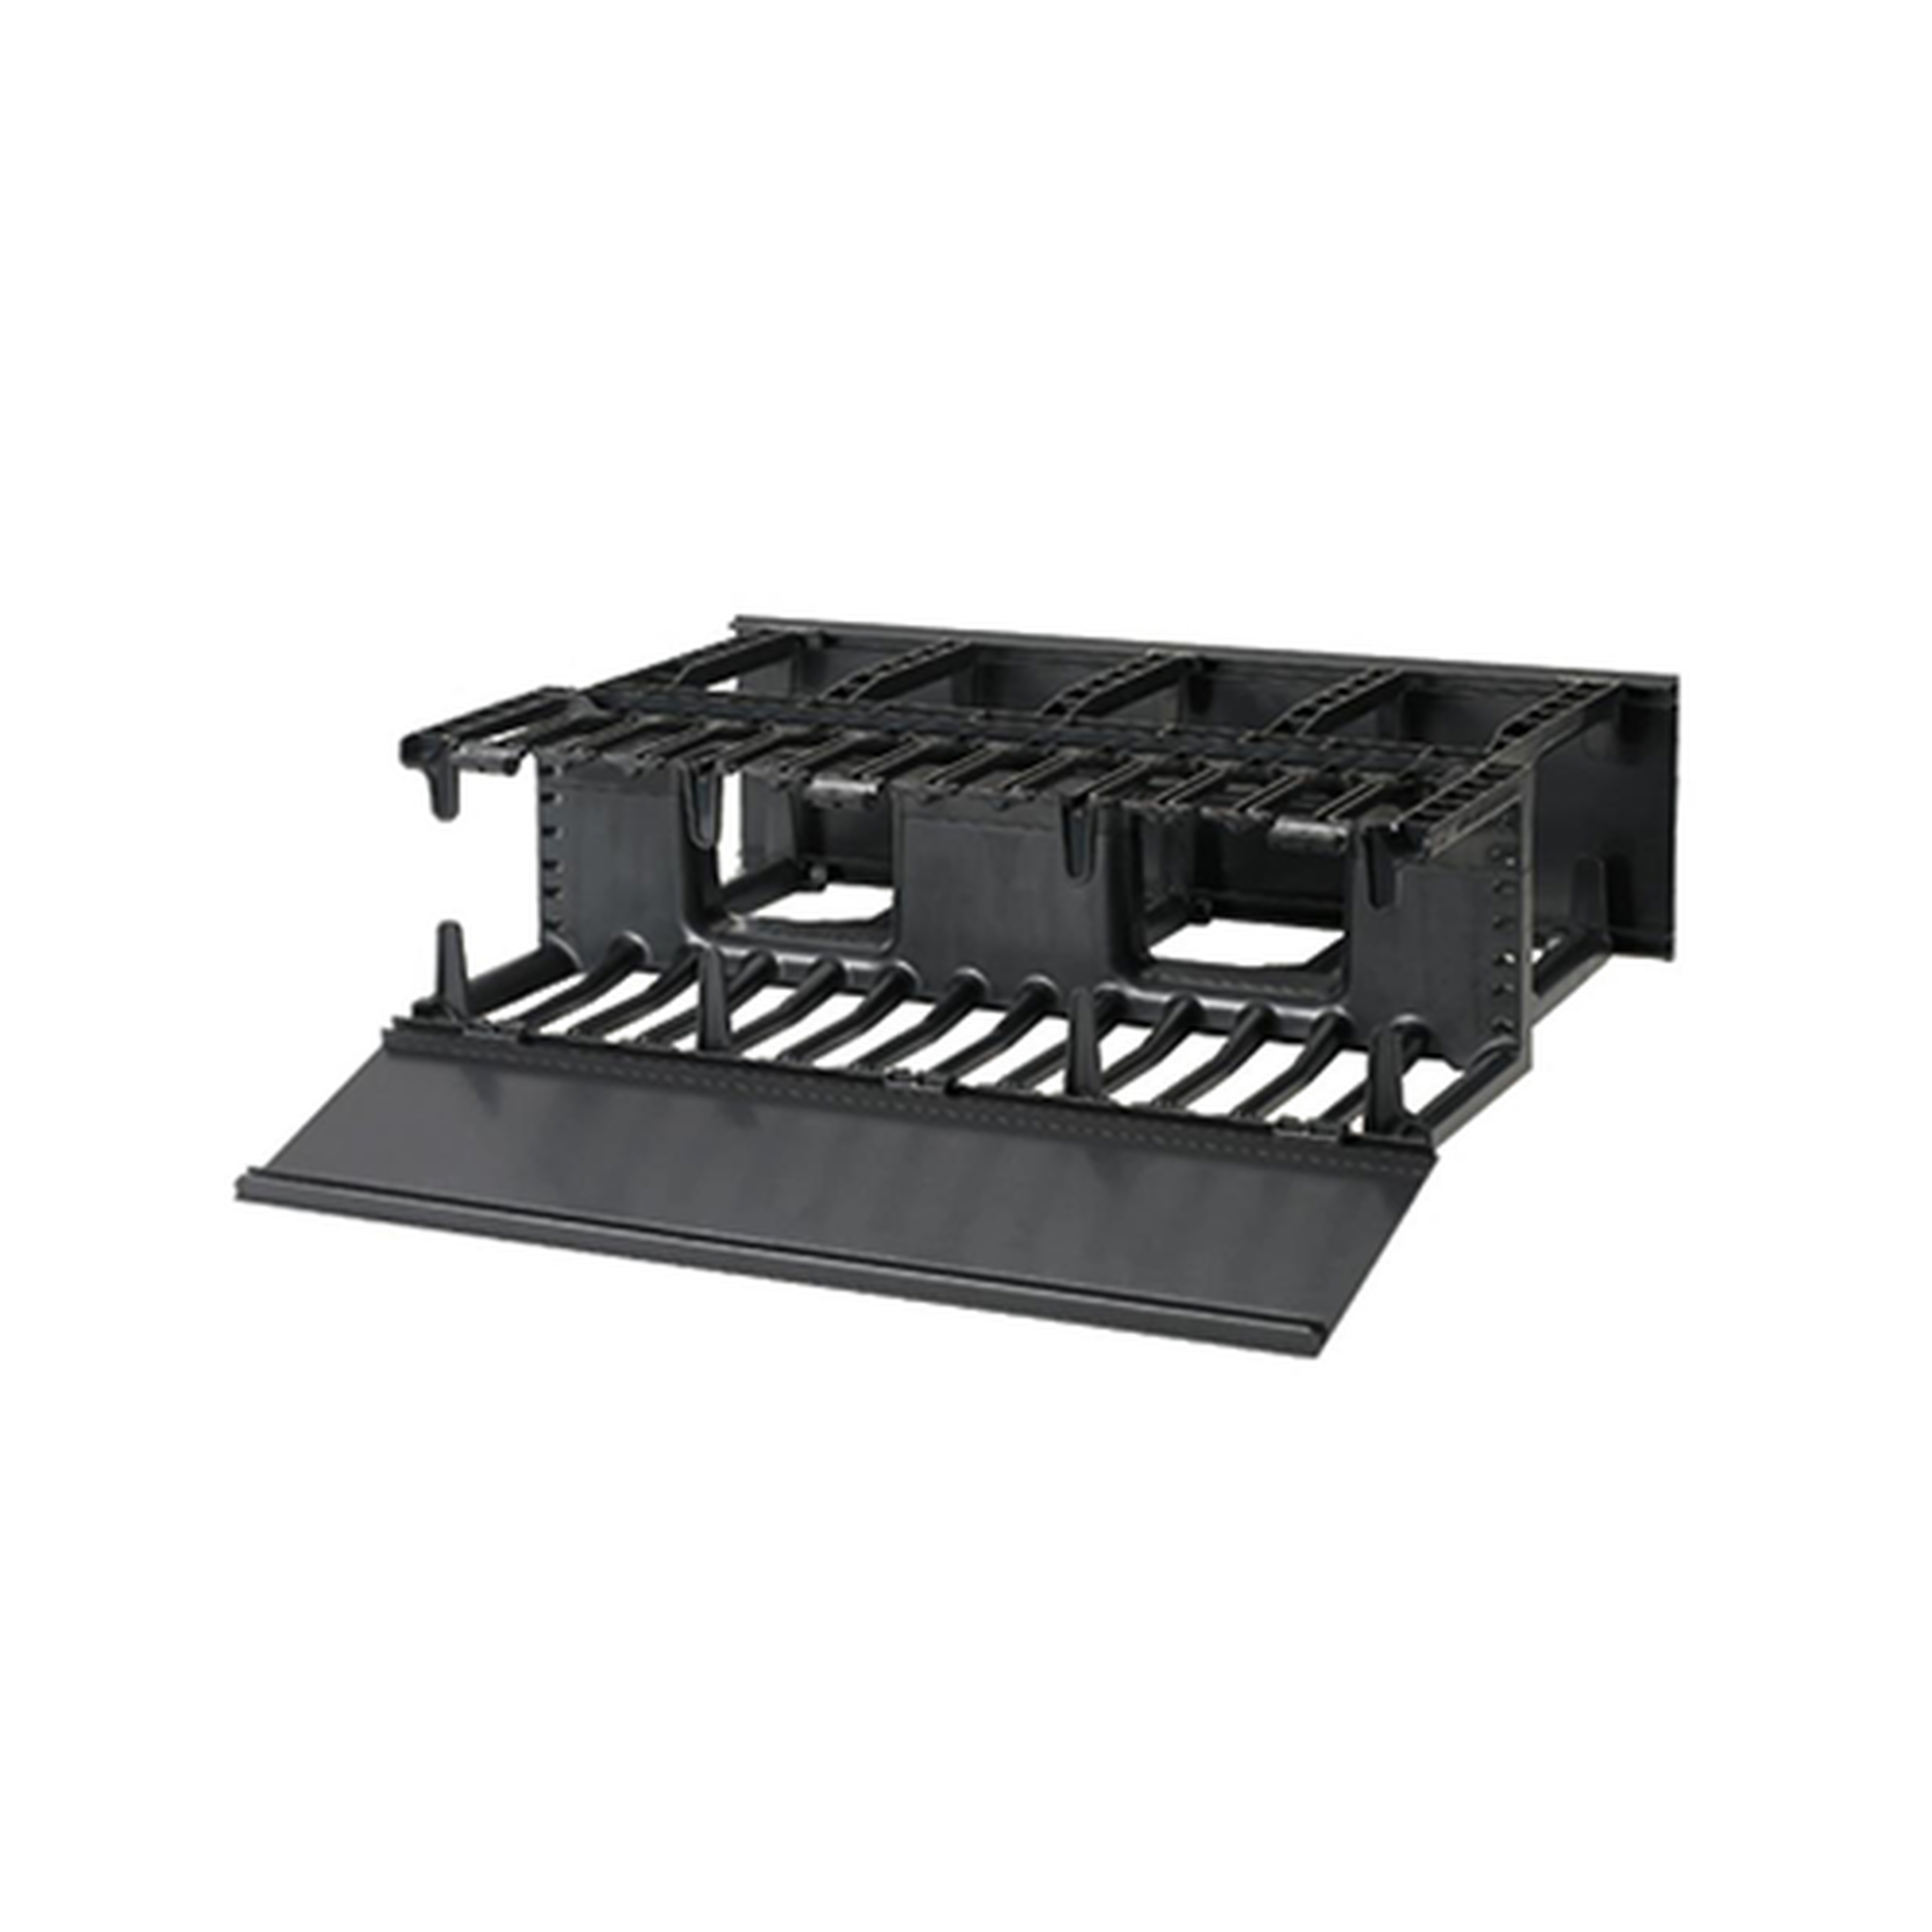 Organizador de Cables Horizontal NetManager, Doble (Frontal y Posterior), Para Rack de 19in, 3UR